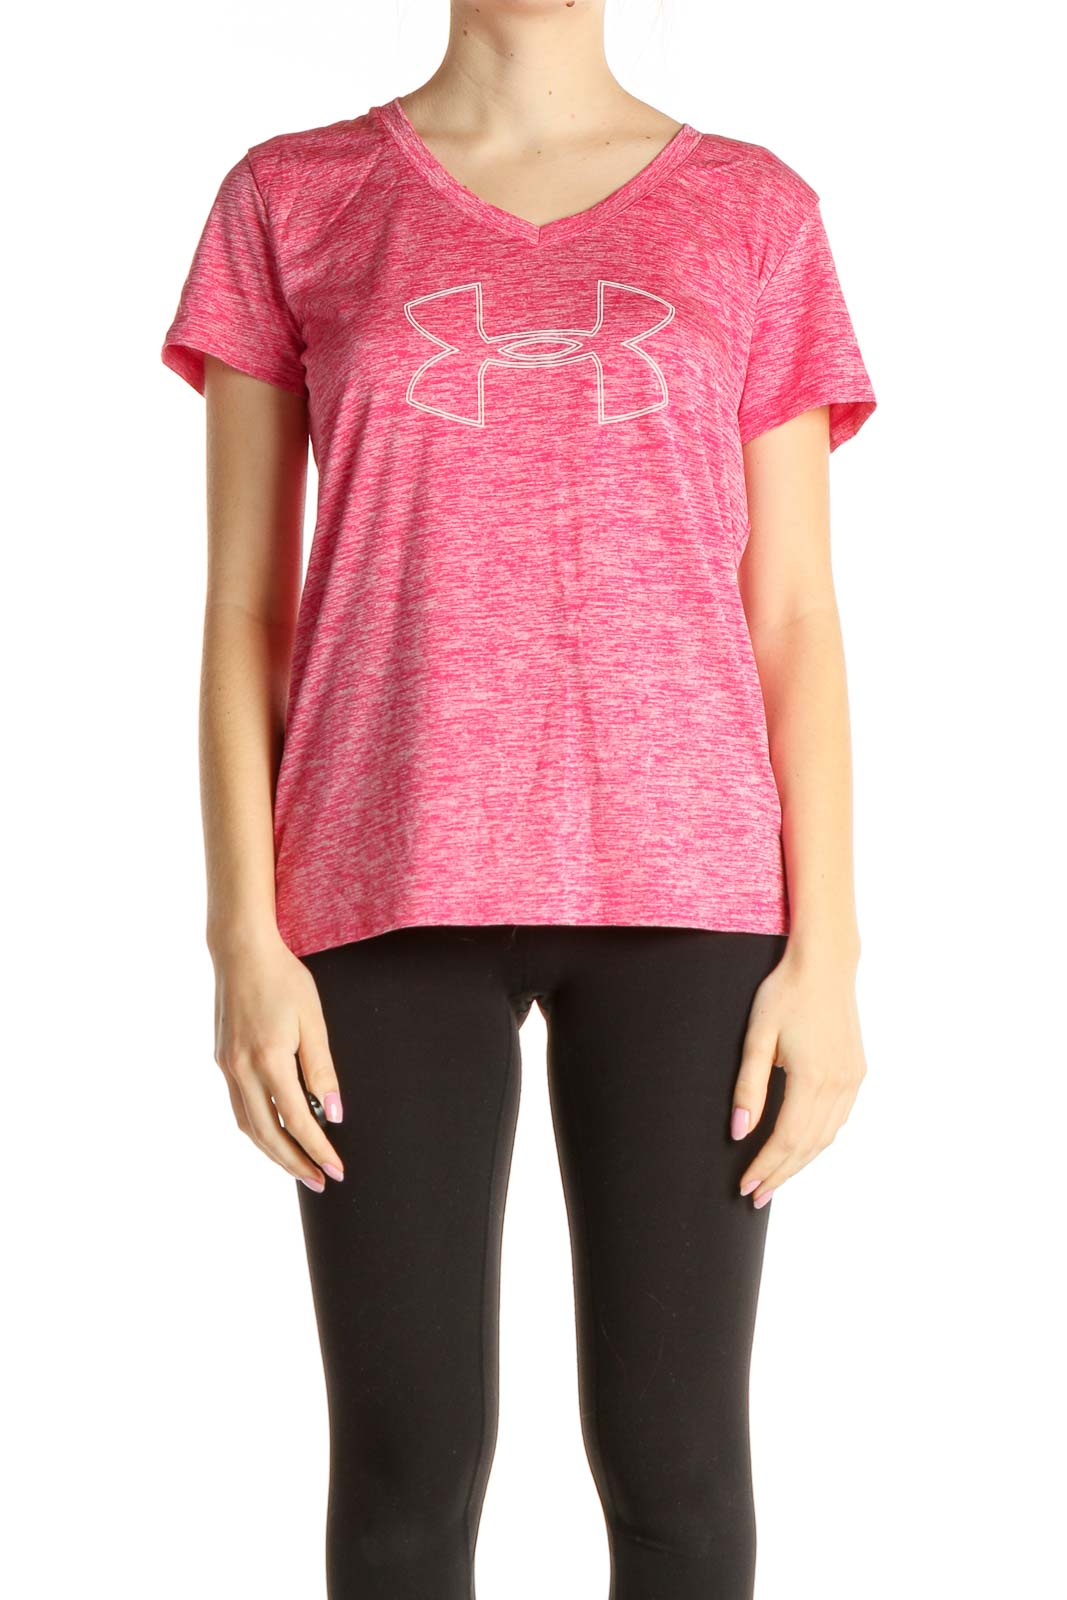 Pink Graphic Print Activewear T-Shirt Front